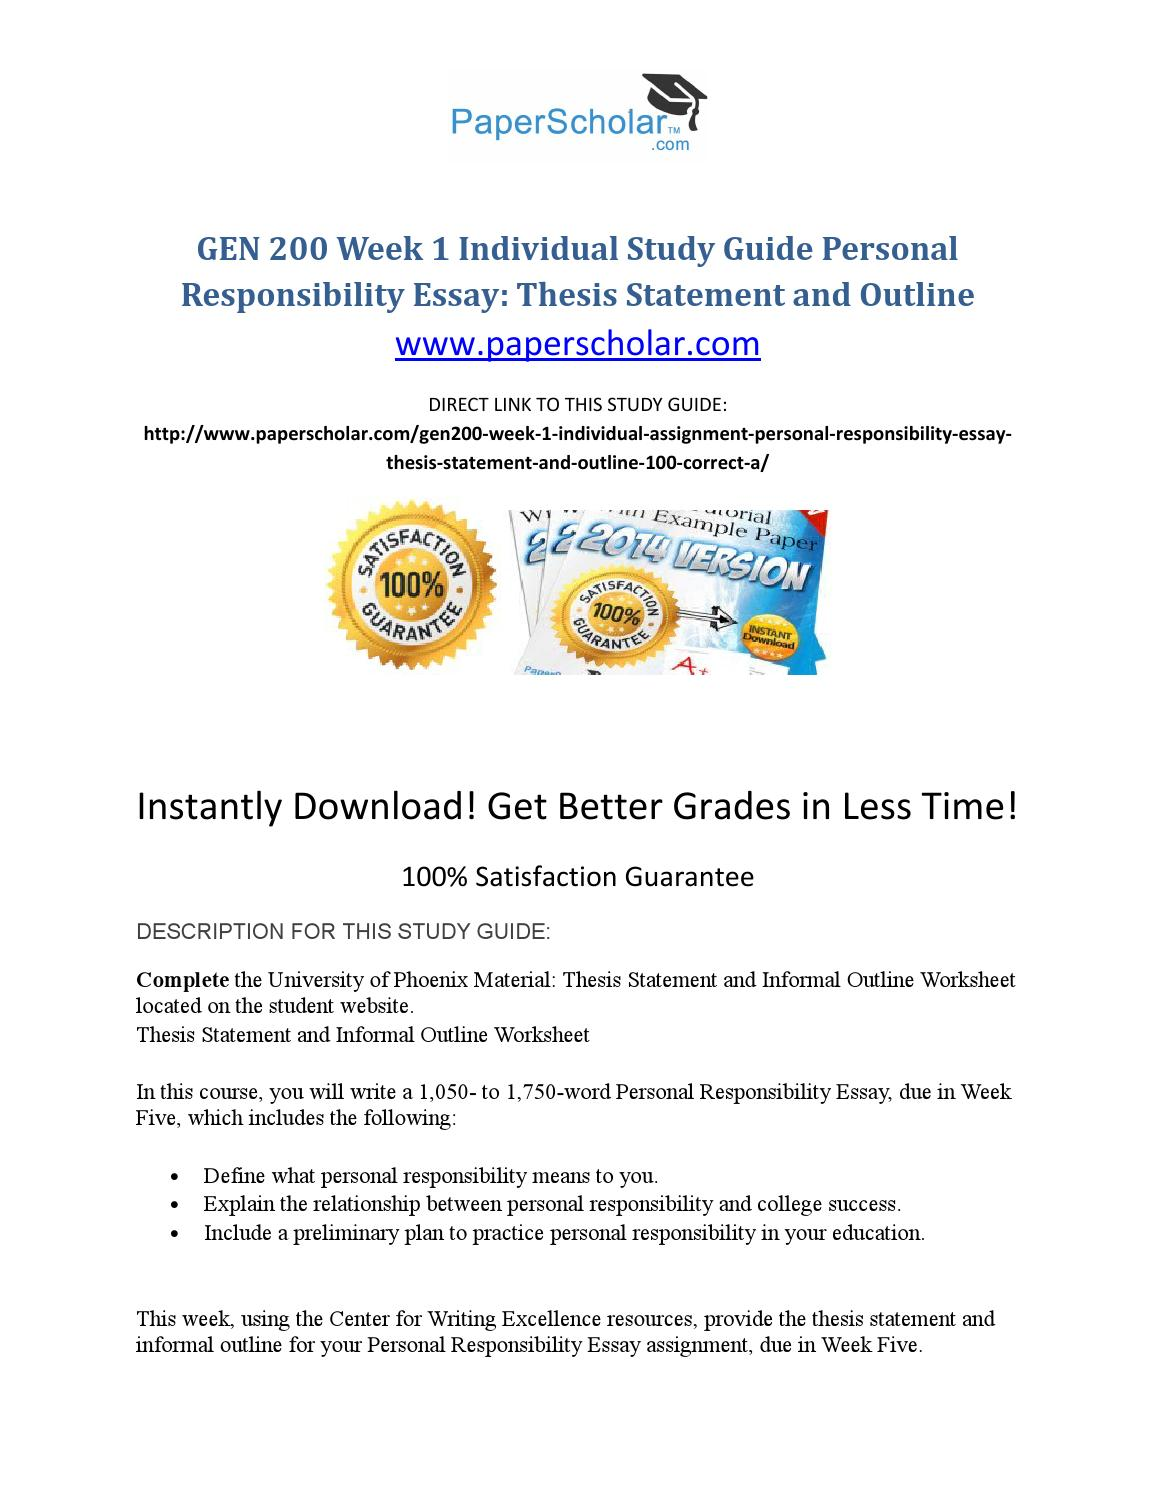 Gen  Week  Individual Study Guide Personal Responsibility Essay  Gen  Week  Individual Study Guide Personal Responsibility Essay Thesis  Statement And Outline By Jahidmax  Issuu Health And Fitness Essays also Essay Thesis Statement  Business Plan Writer Vancouver Bc